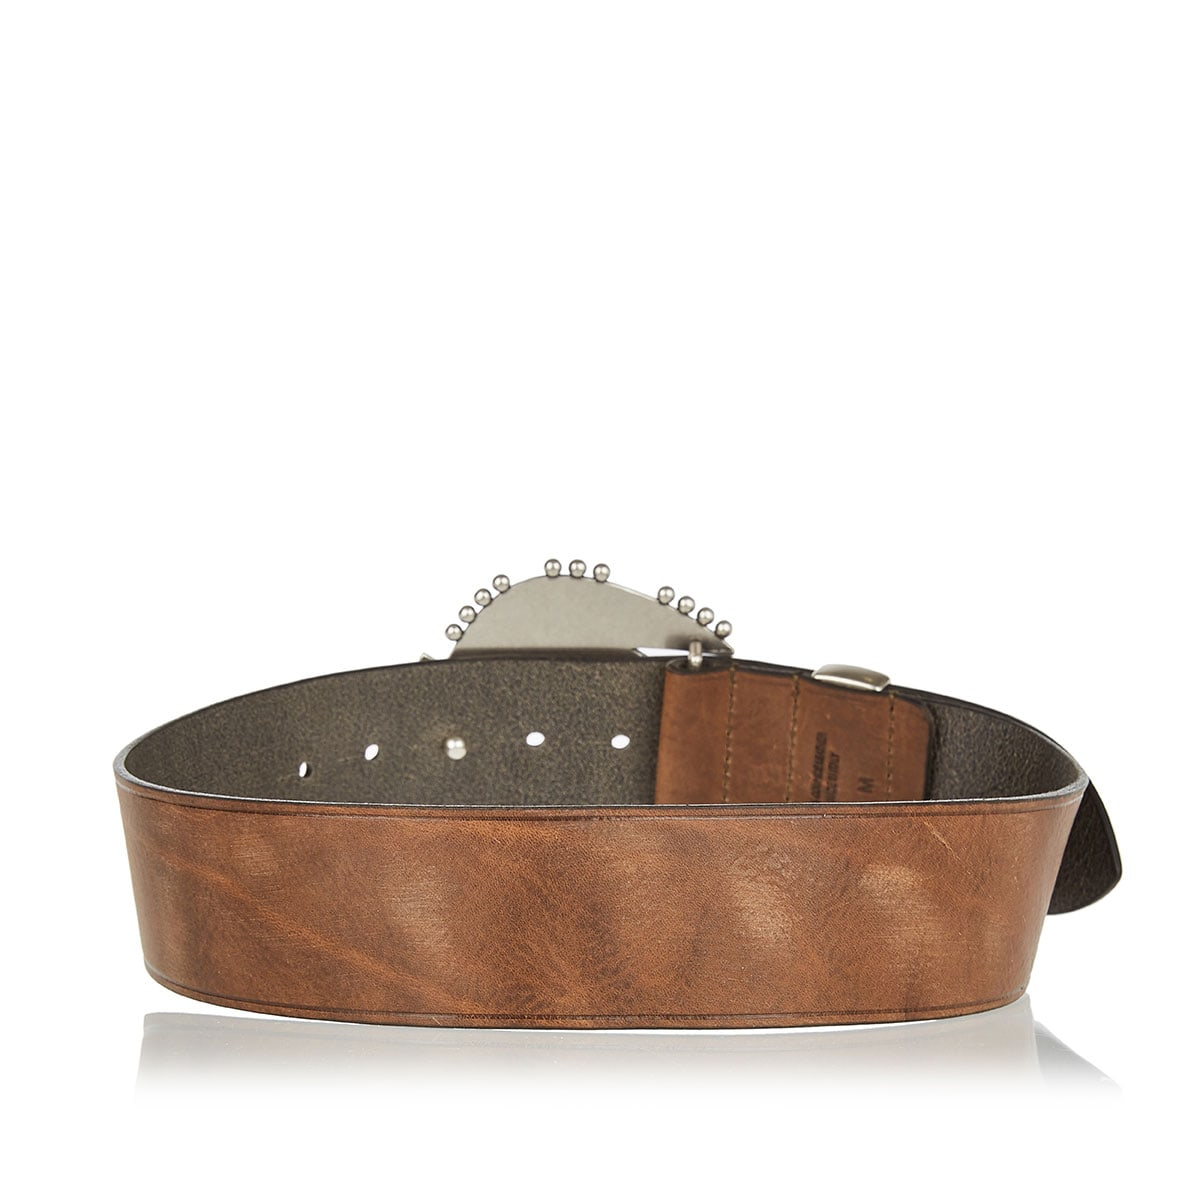 Abigail embellished leather belt